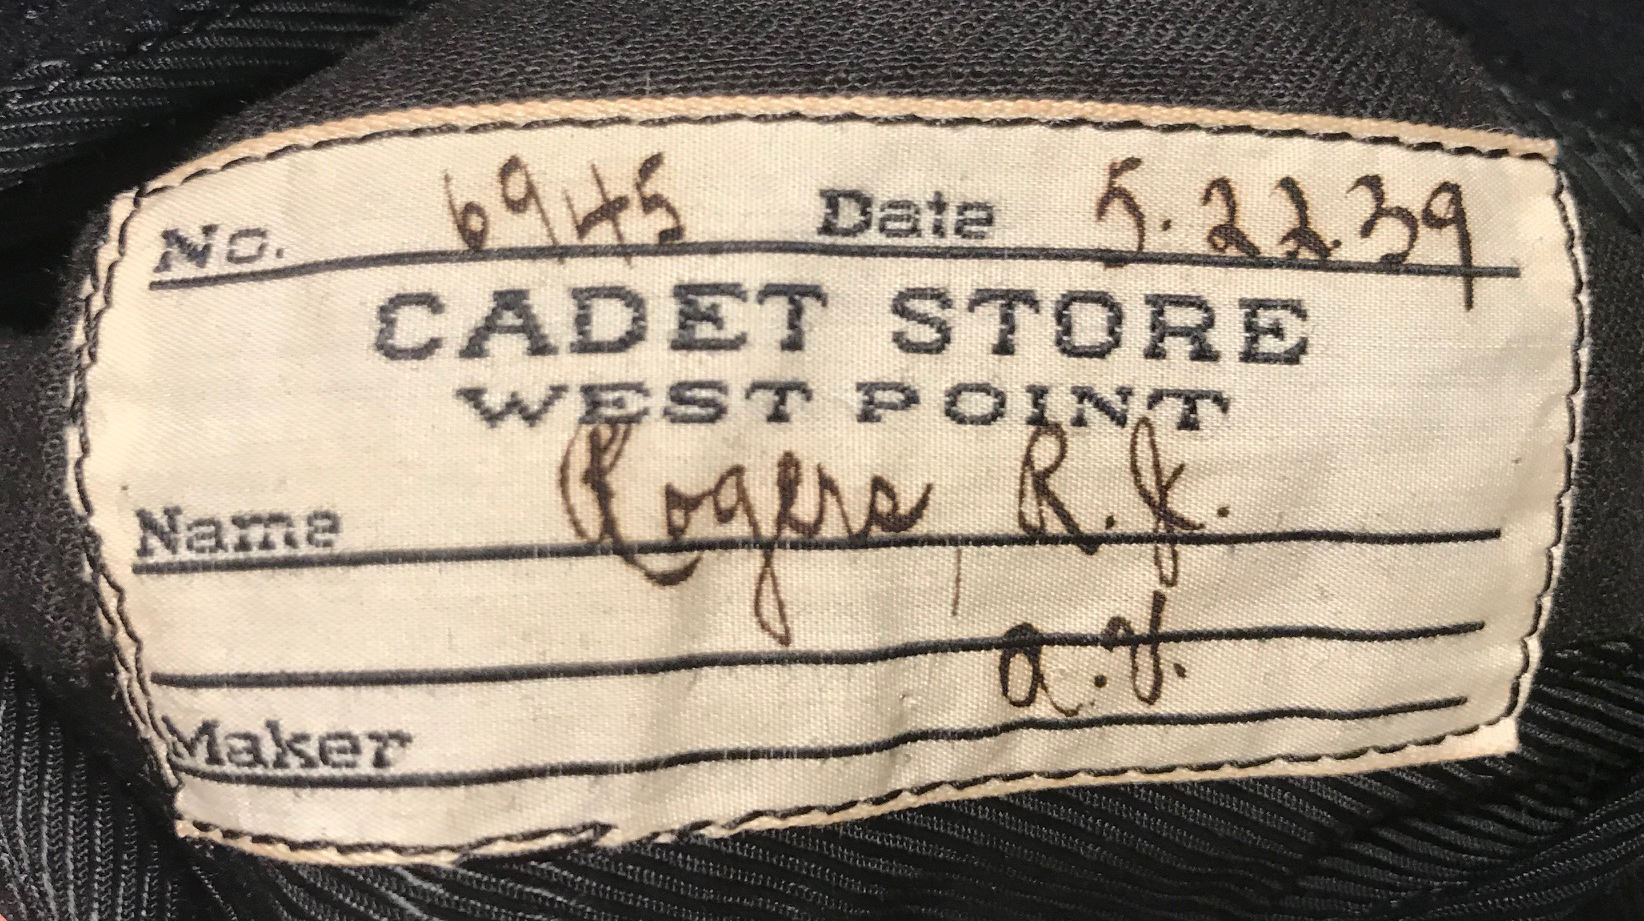 WWII West Point Cadet uniform